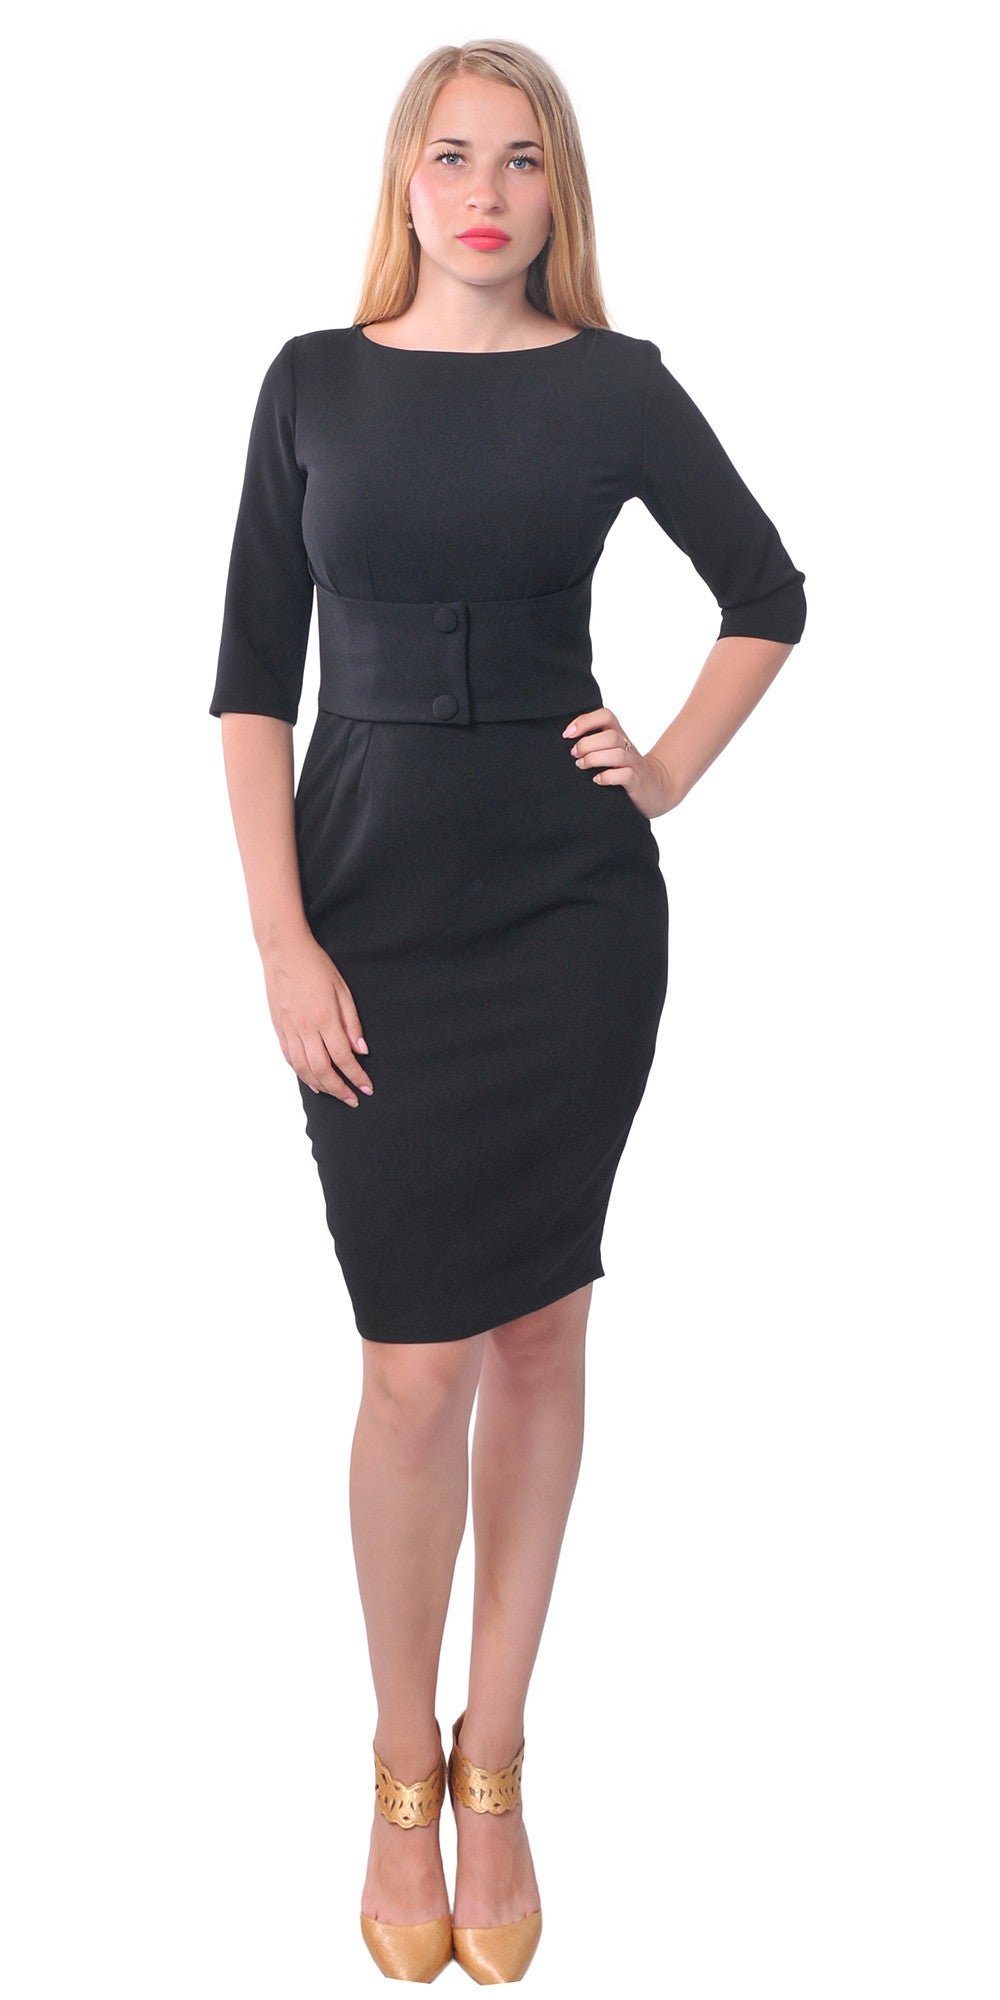 Classy Vintage 60s Work Office Wiggle Pencil Dress